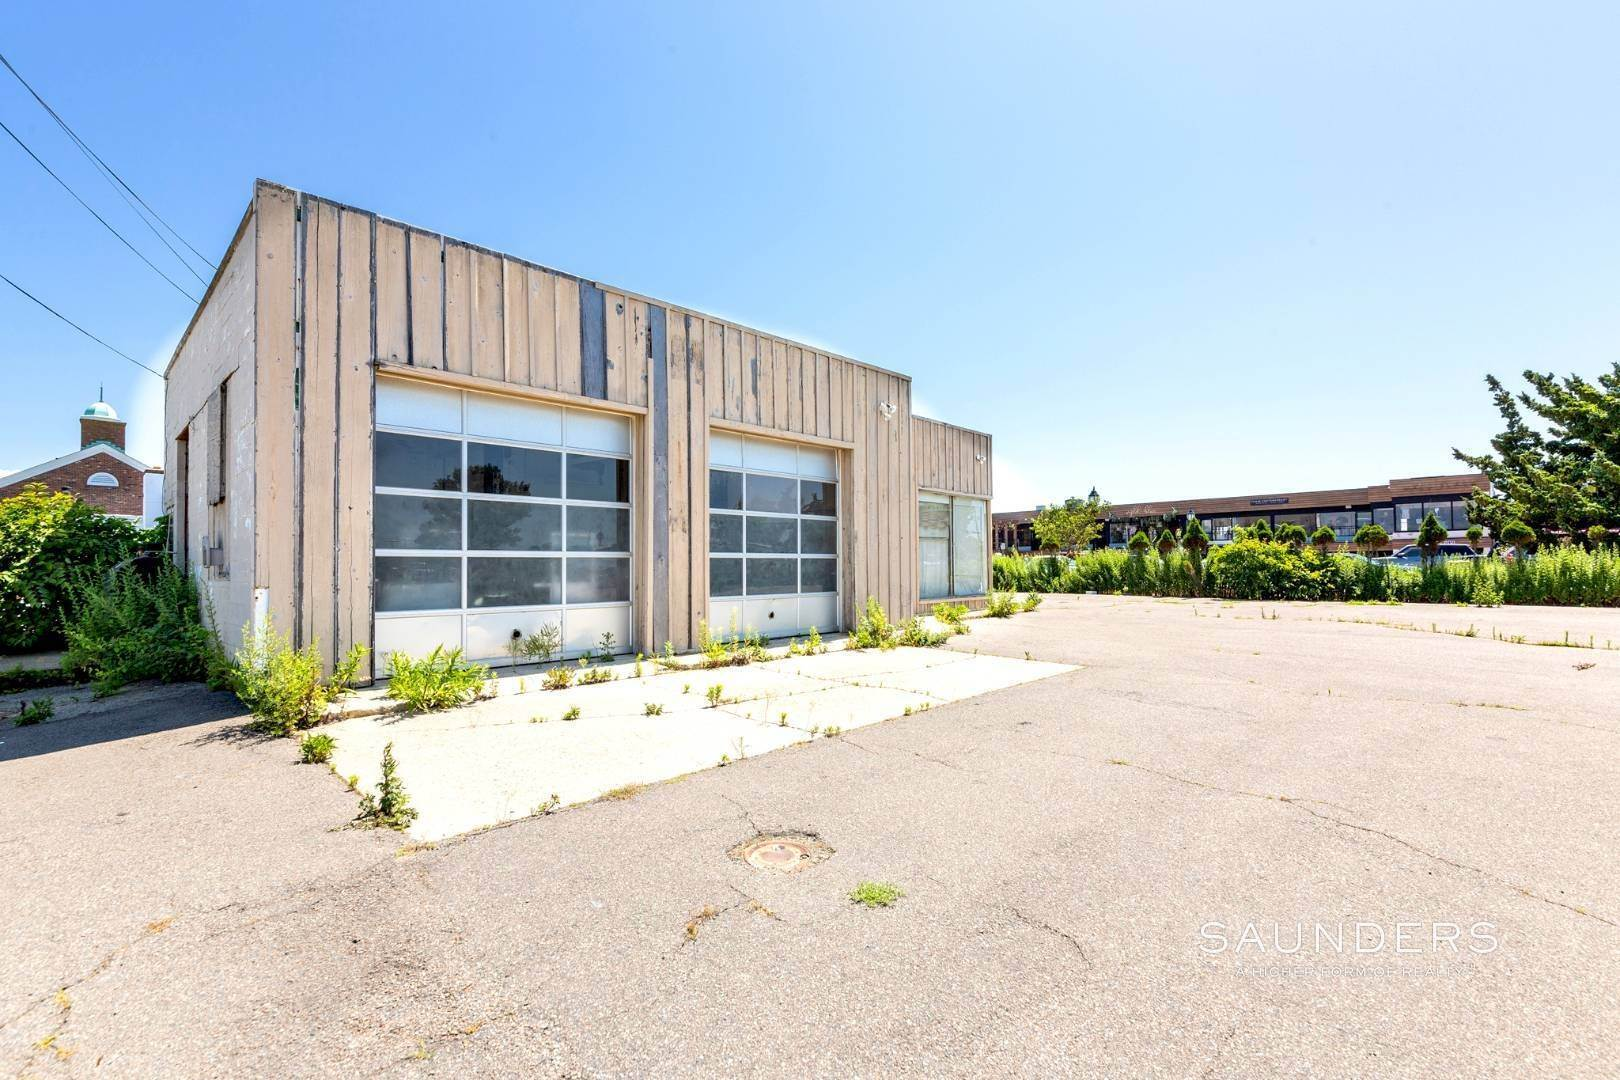 3. Commercial for Sale at Heart Of Montauk- Commercial Property For Sale 717 Montauk Highway, Montauk, East Hampton Town, NY 11954